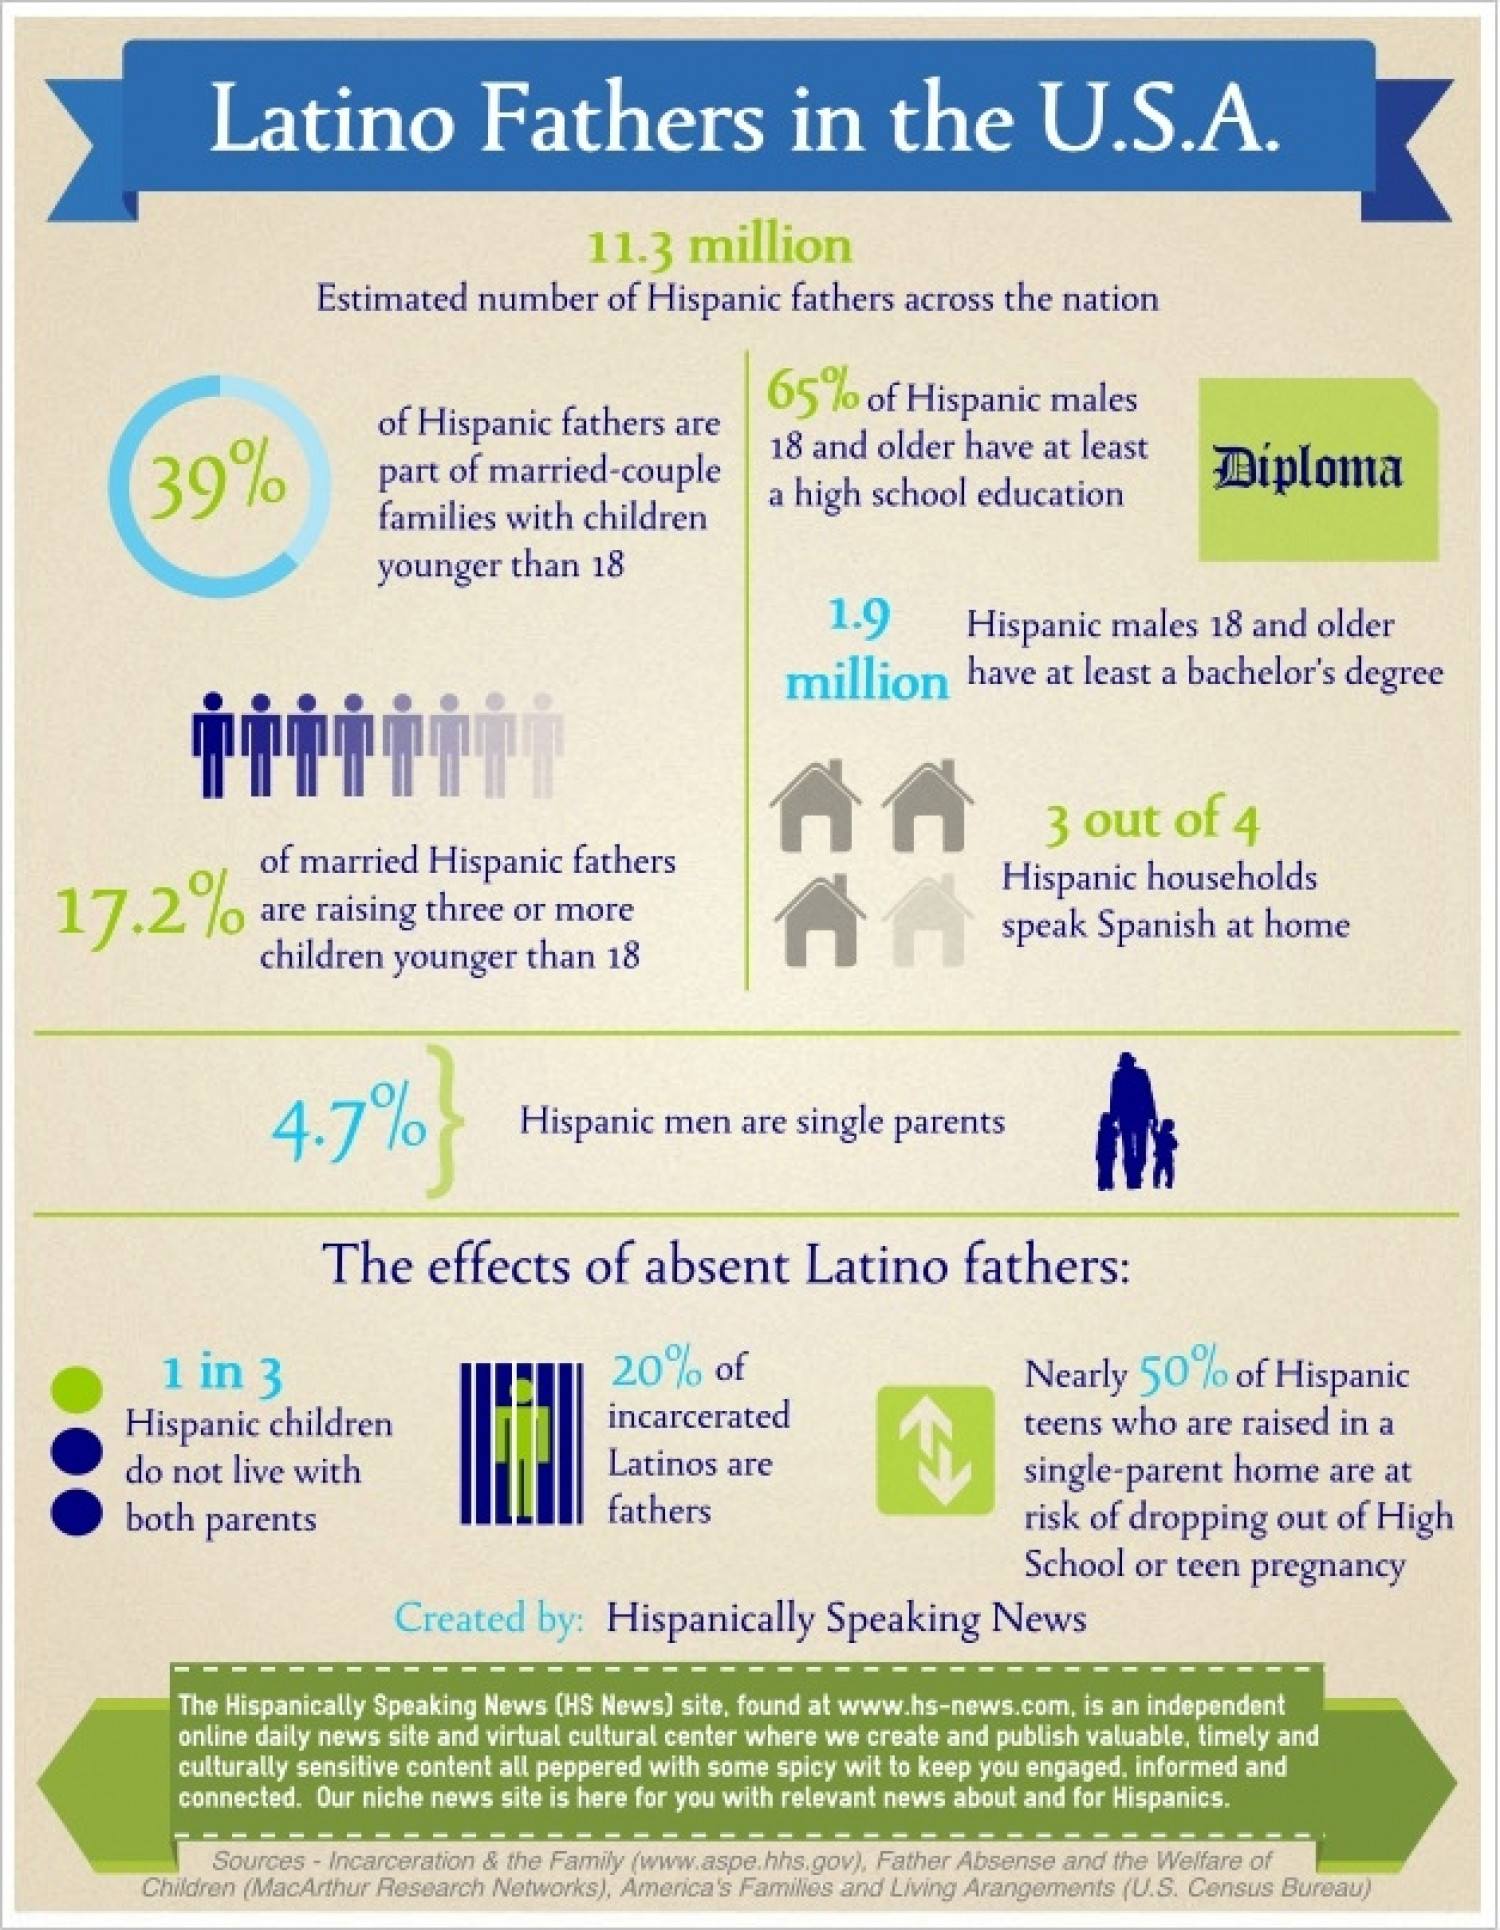 Latino Fathers in the U.S.A. Infographic